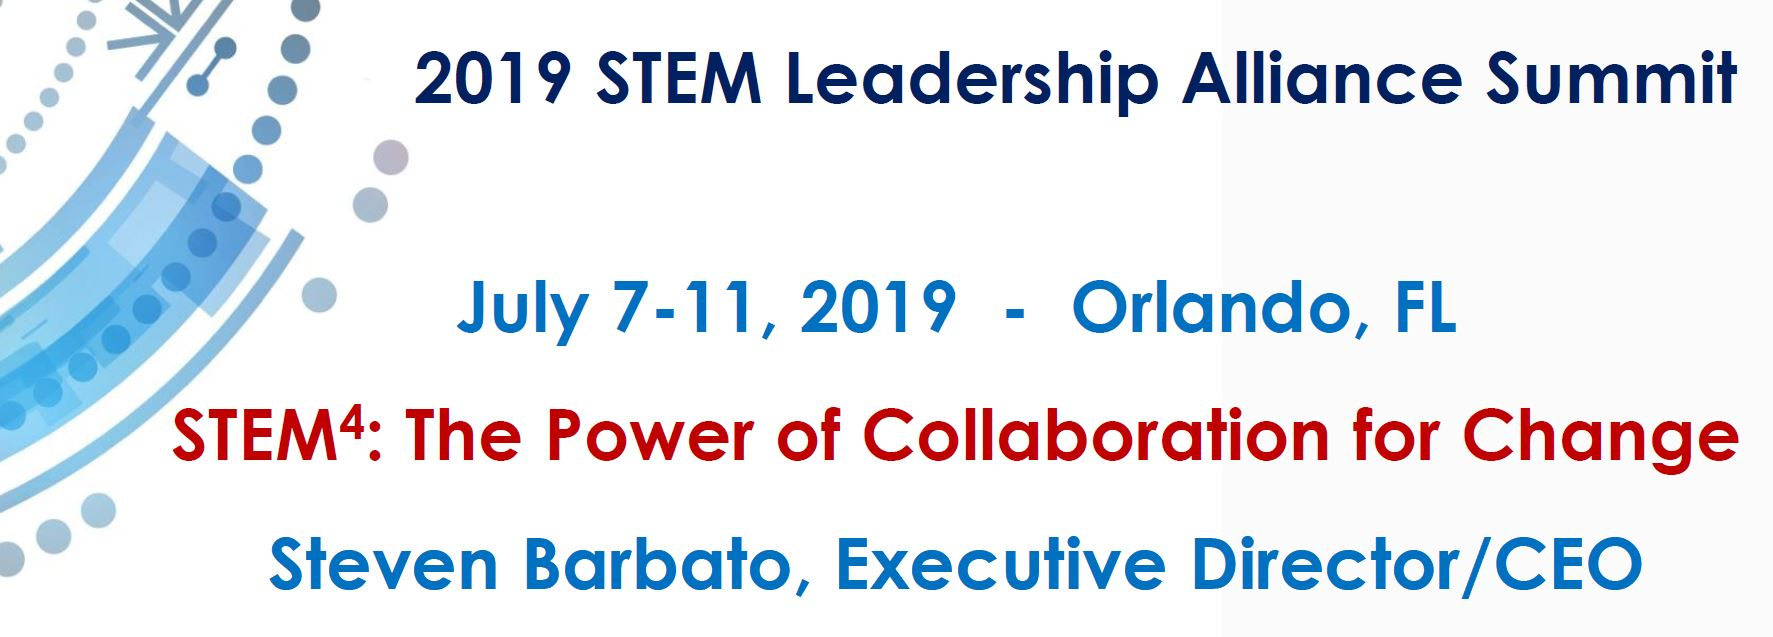 2019 STEM Leadership Alliance Summit: STEM4: The Power of Collaboration for Change